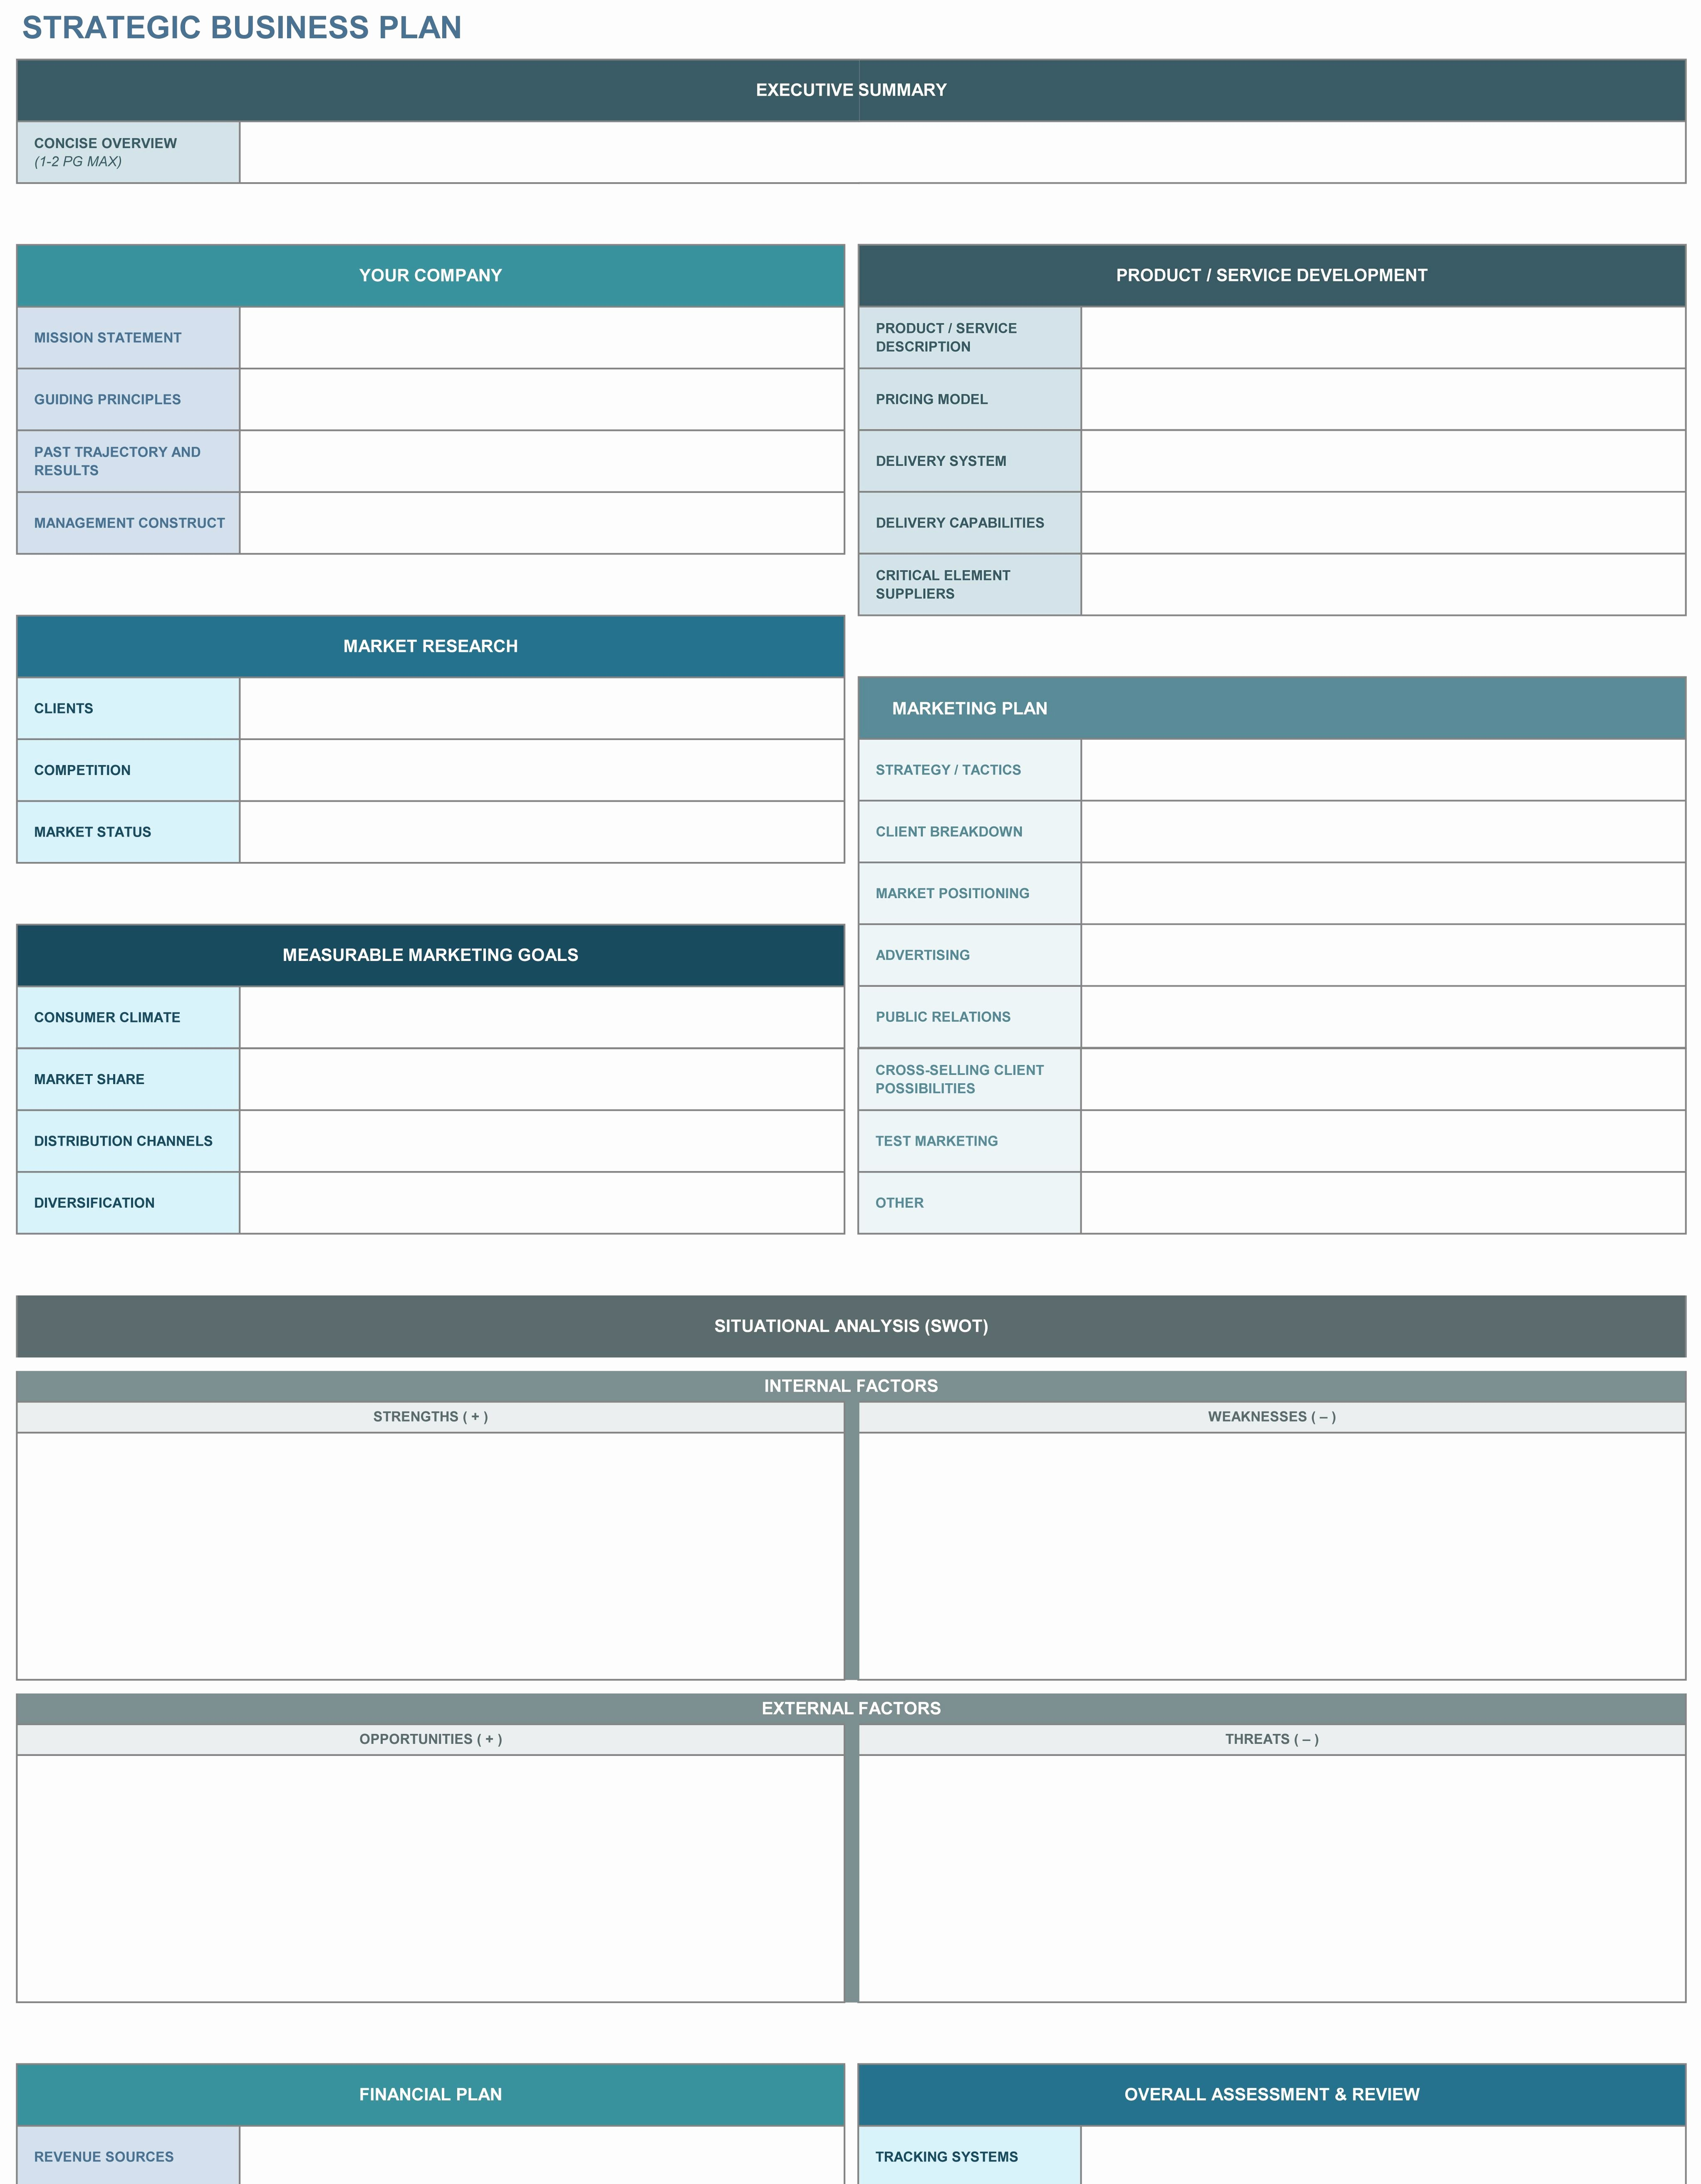 Free Strategic Plan Template Beautiful 9 Free Strategic Business Plan Excel Templates